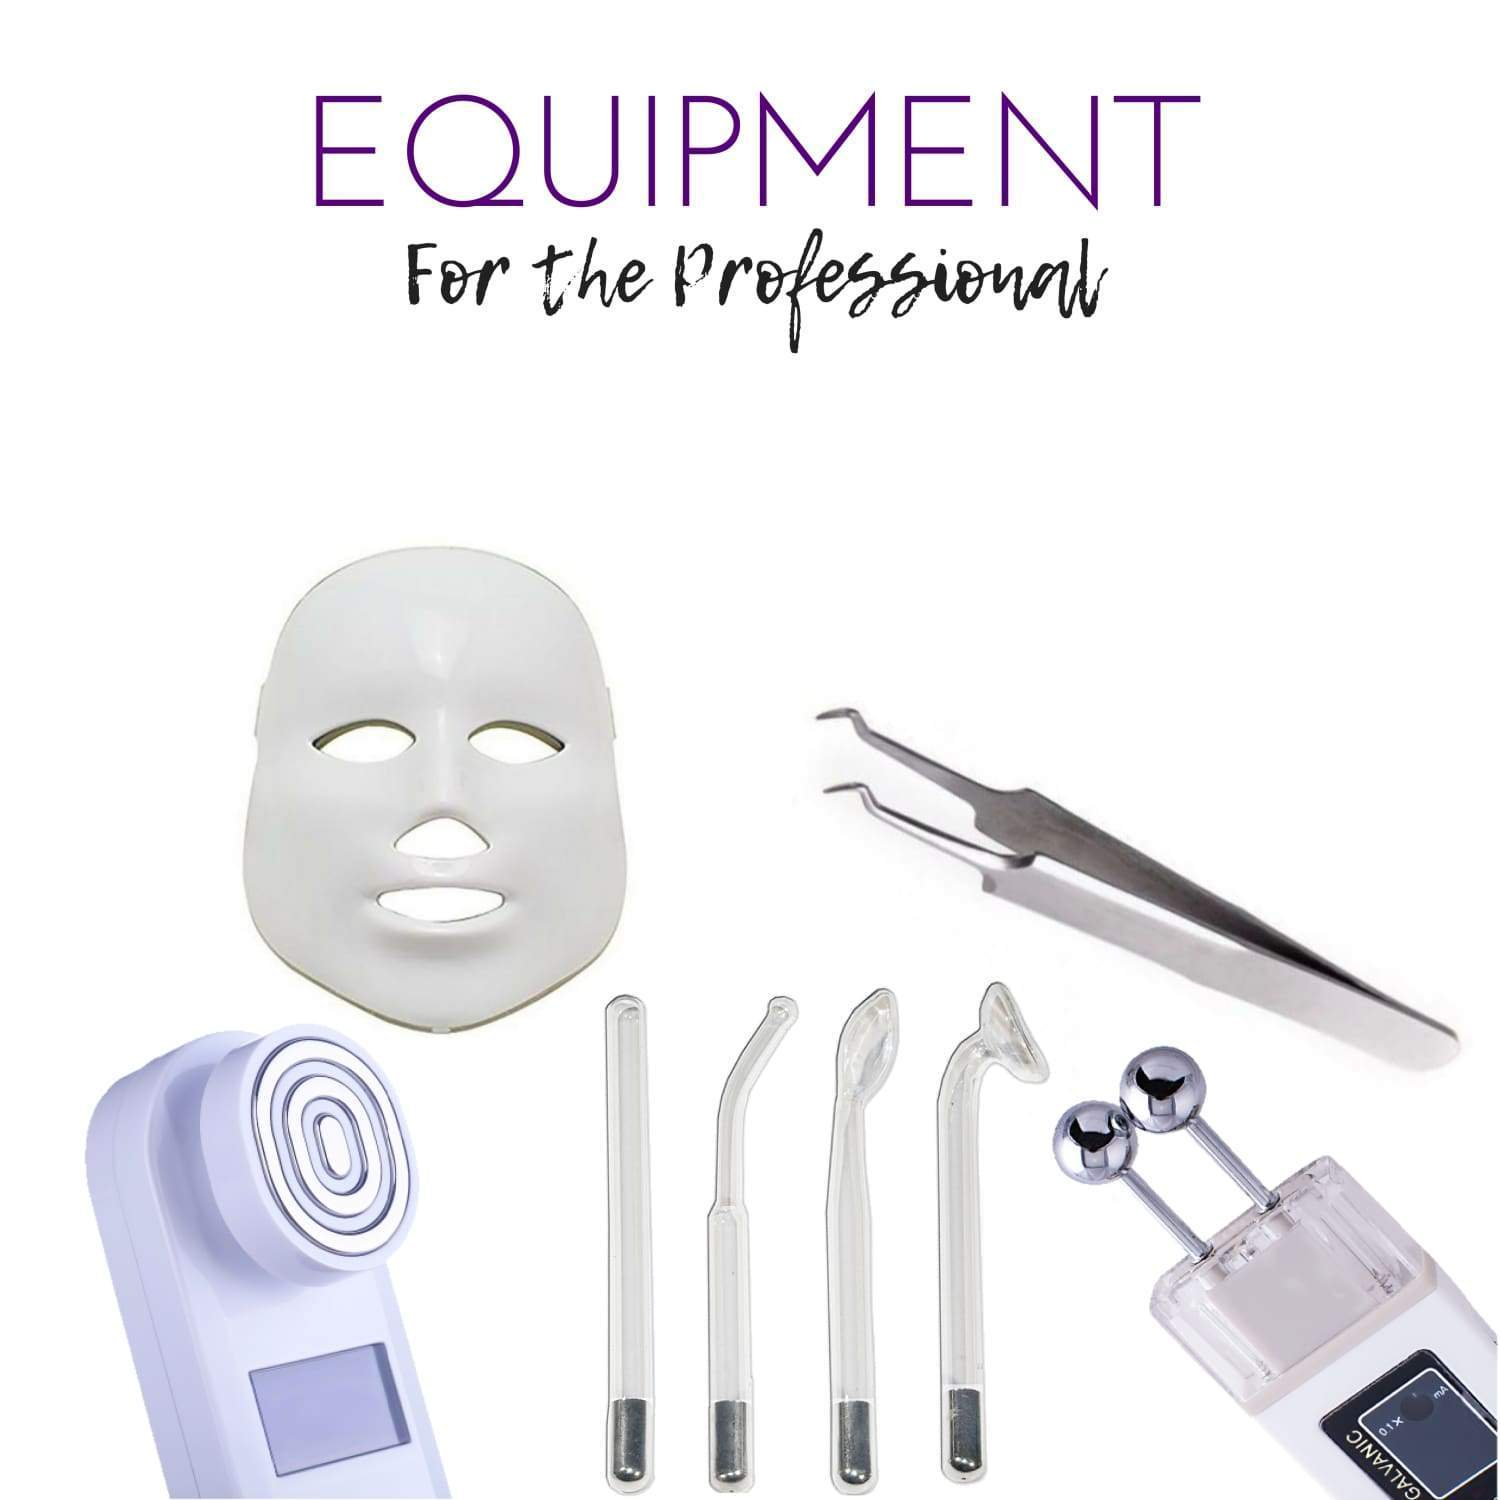 *Esthetician Equipment for Spa Professionals